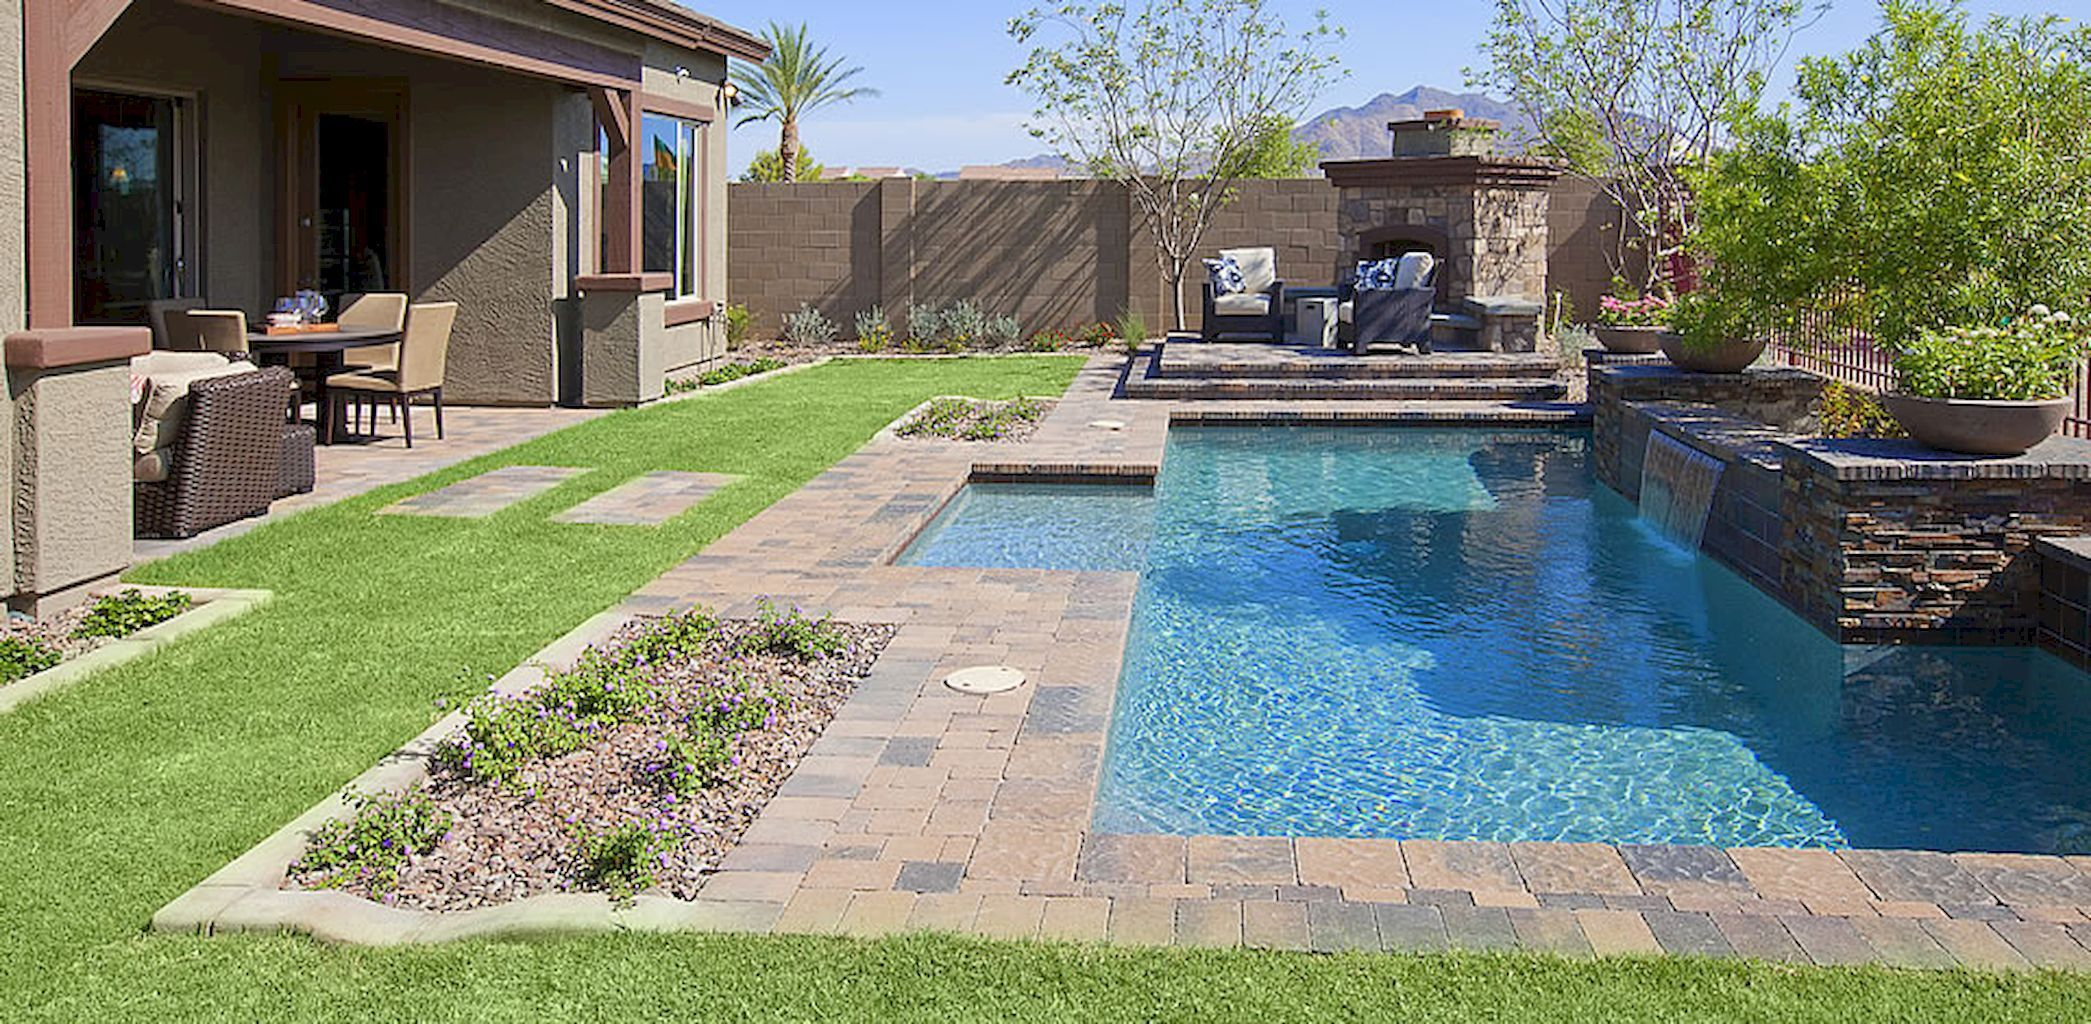 40 arizona backyard ideas on a budget (33) | Arizona ... on Backyard Desert Landscaping Ideas On A Budget  id=53532